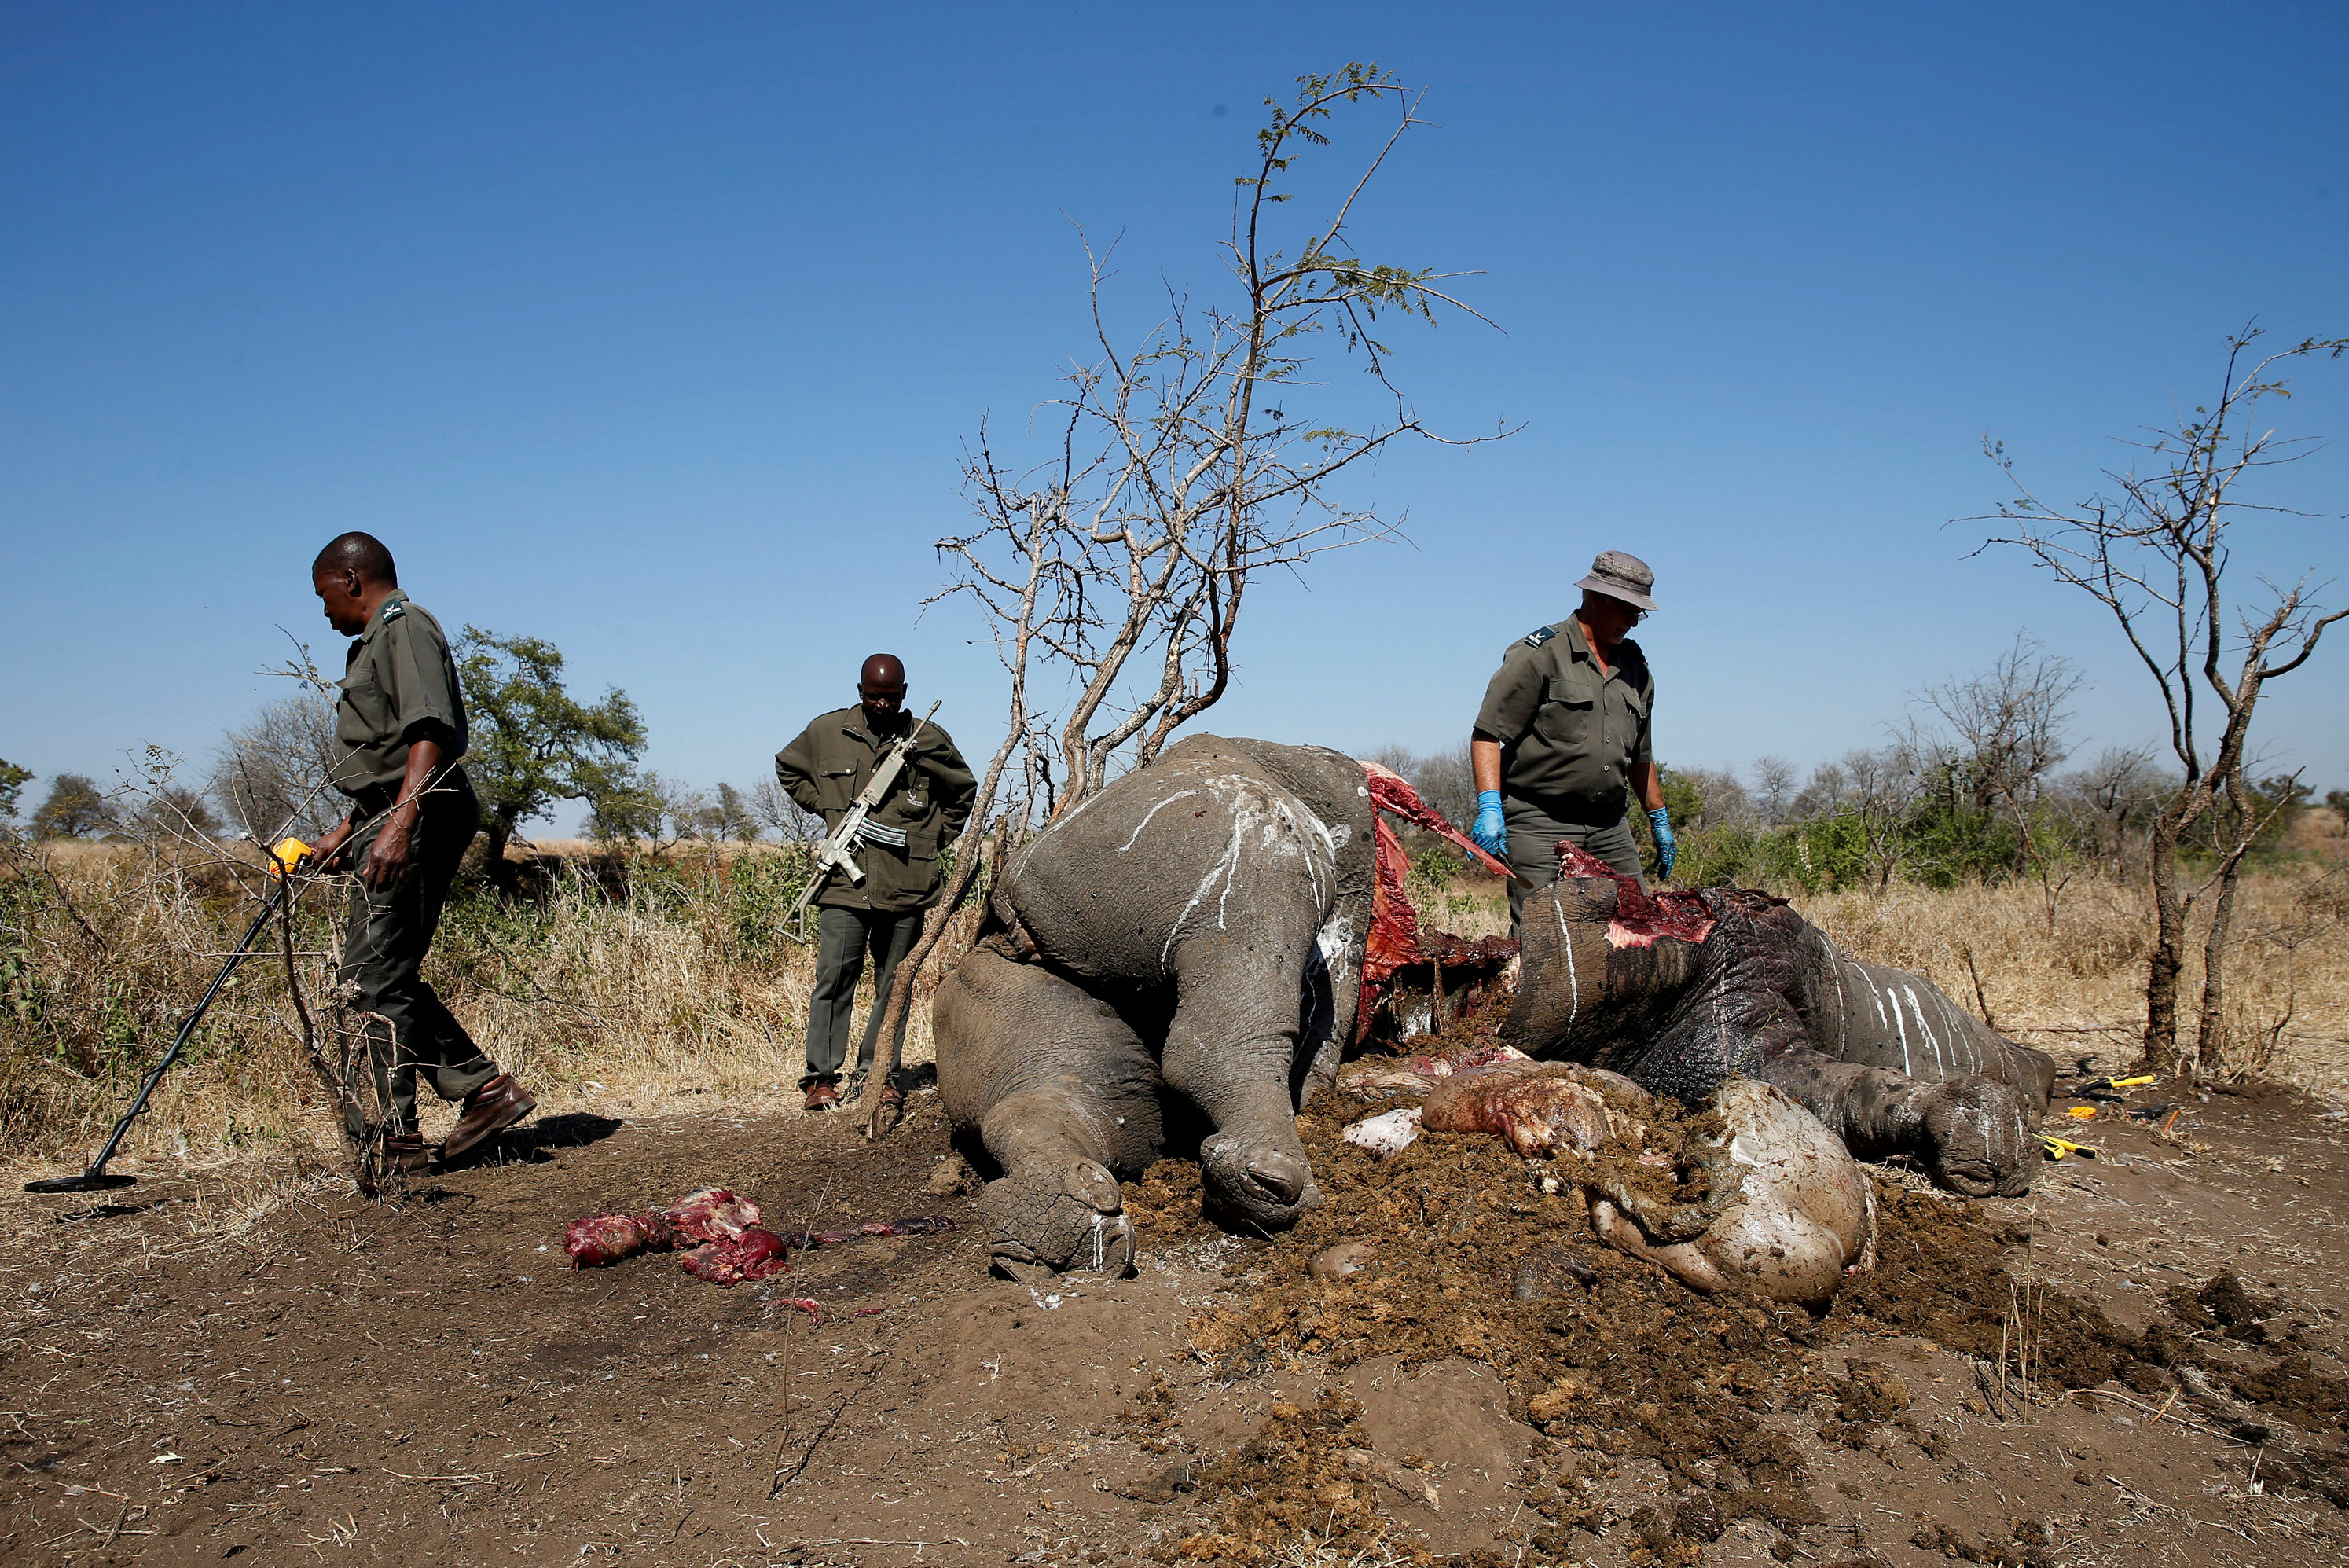 Rhino poaching in South Africa dips from record high